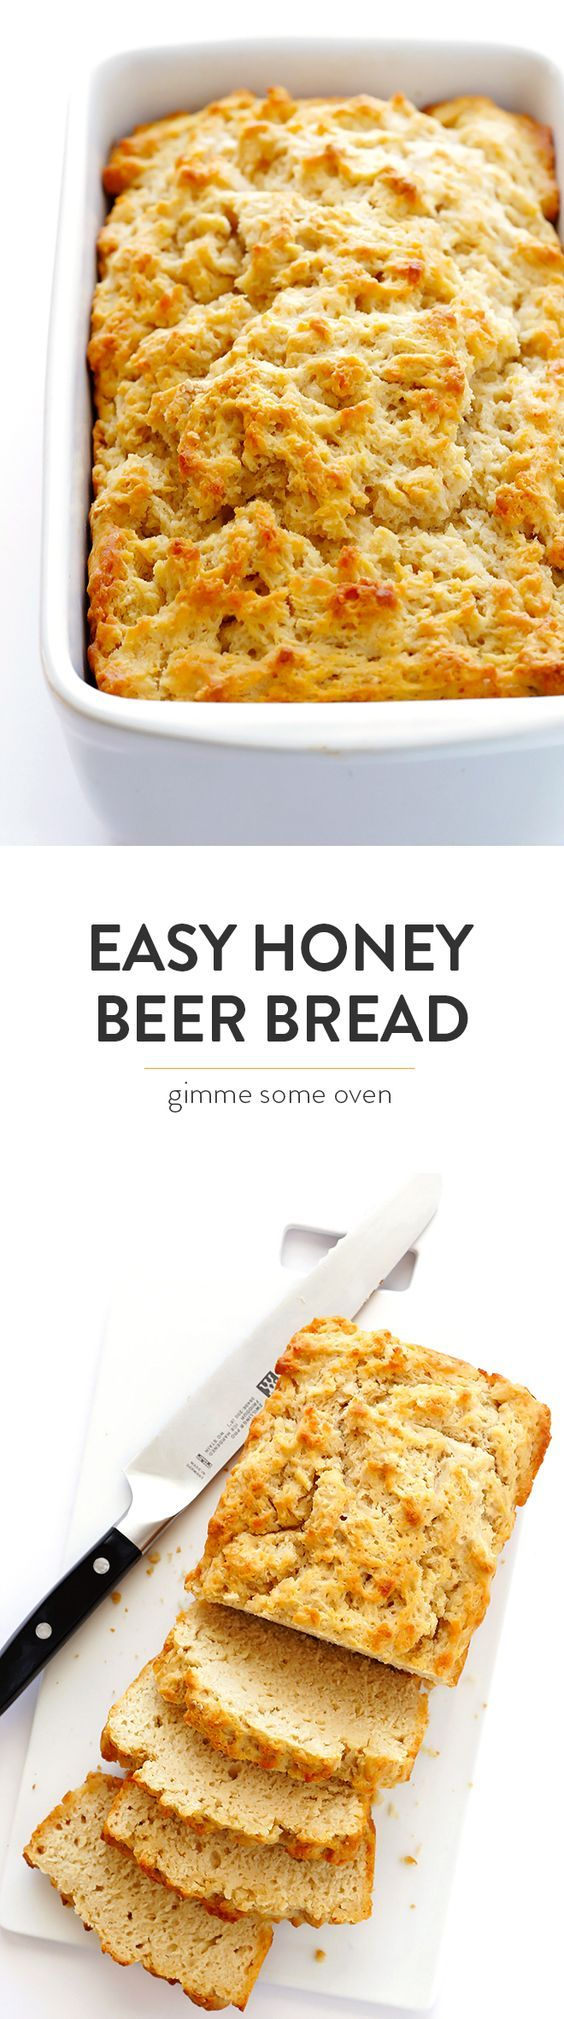 This recipe for Honey Beer Bread is my absolute FAVORITE. It's super easy to make, calls for just 6 ingredients, and tastes perfectly buttery, sweet and delicious!   gimmesomeoven.com